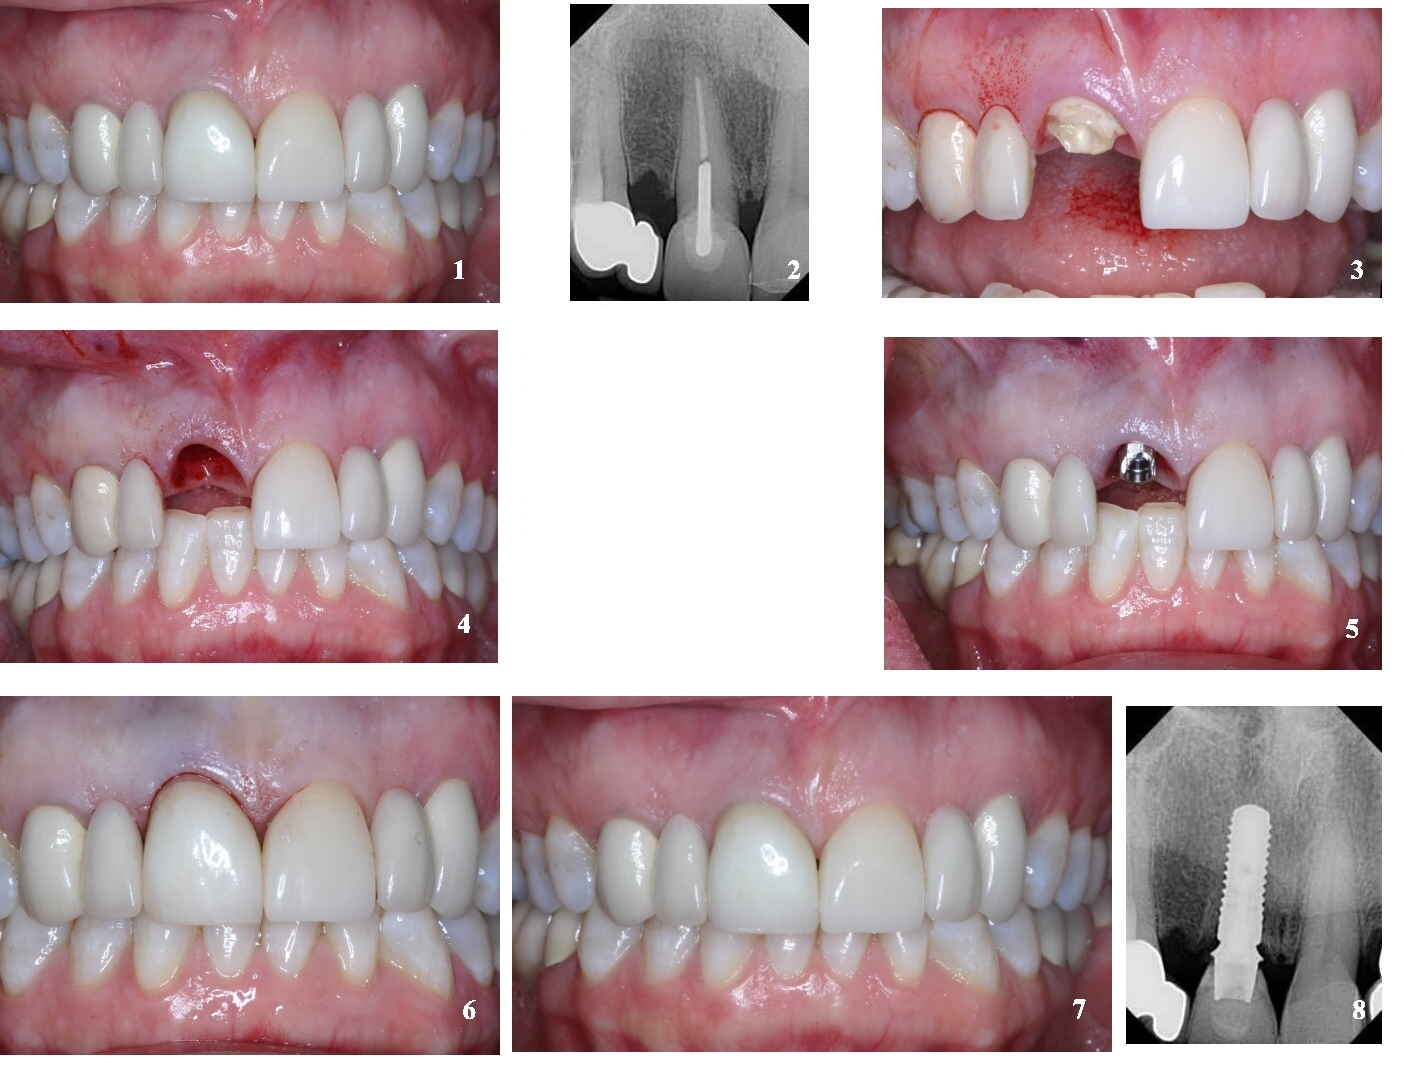 Implant - optimal solutions to replace missing teeth